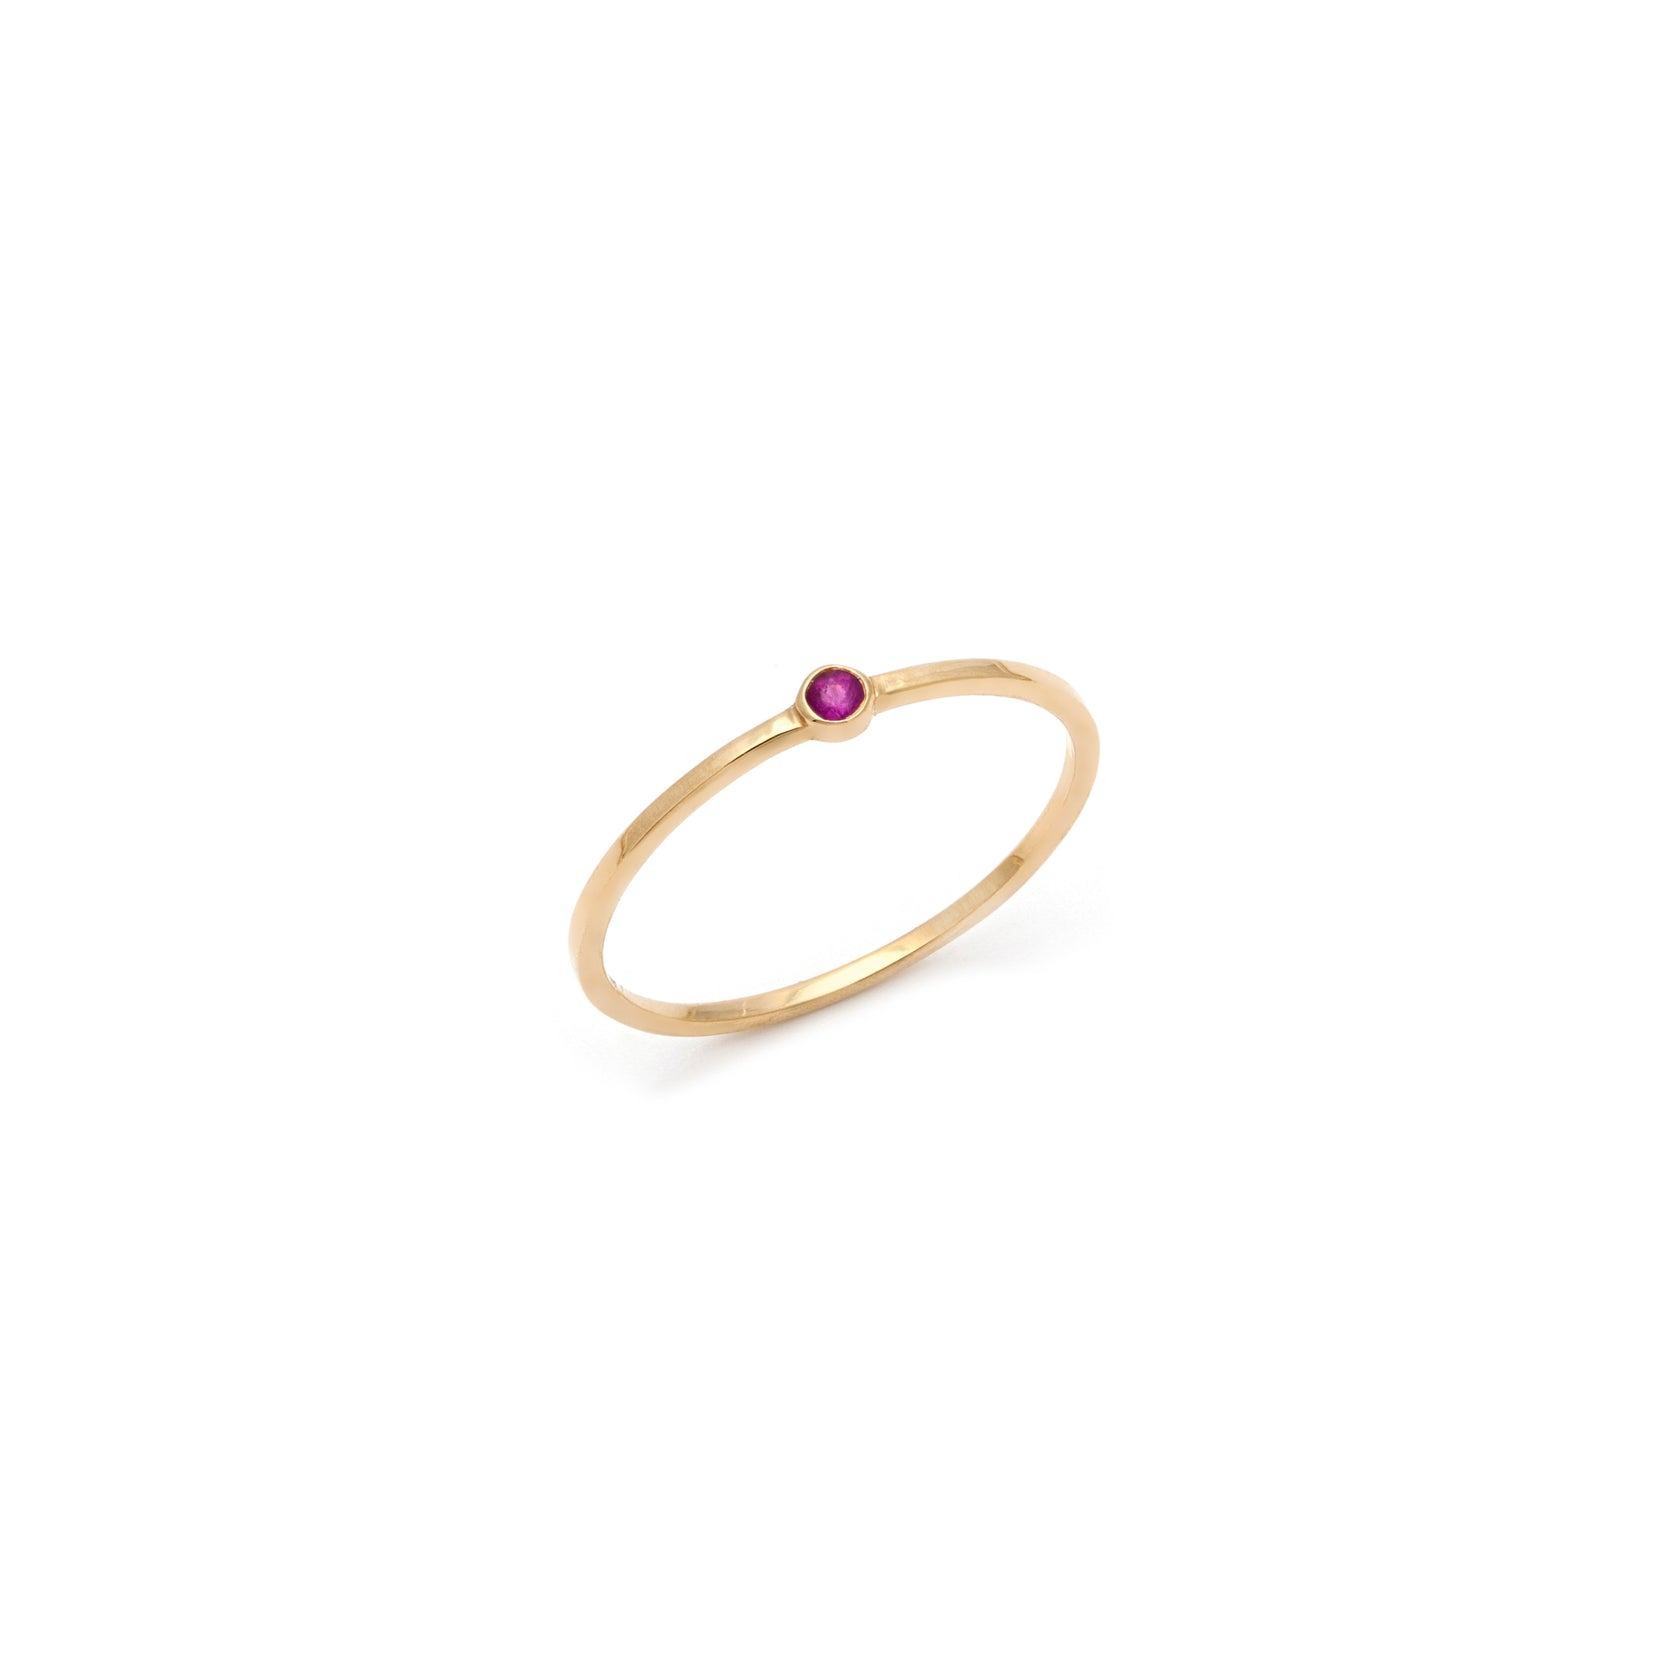 Coveted Ruby Ring - 14k Solid Gold